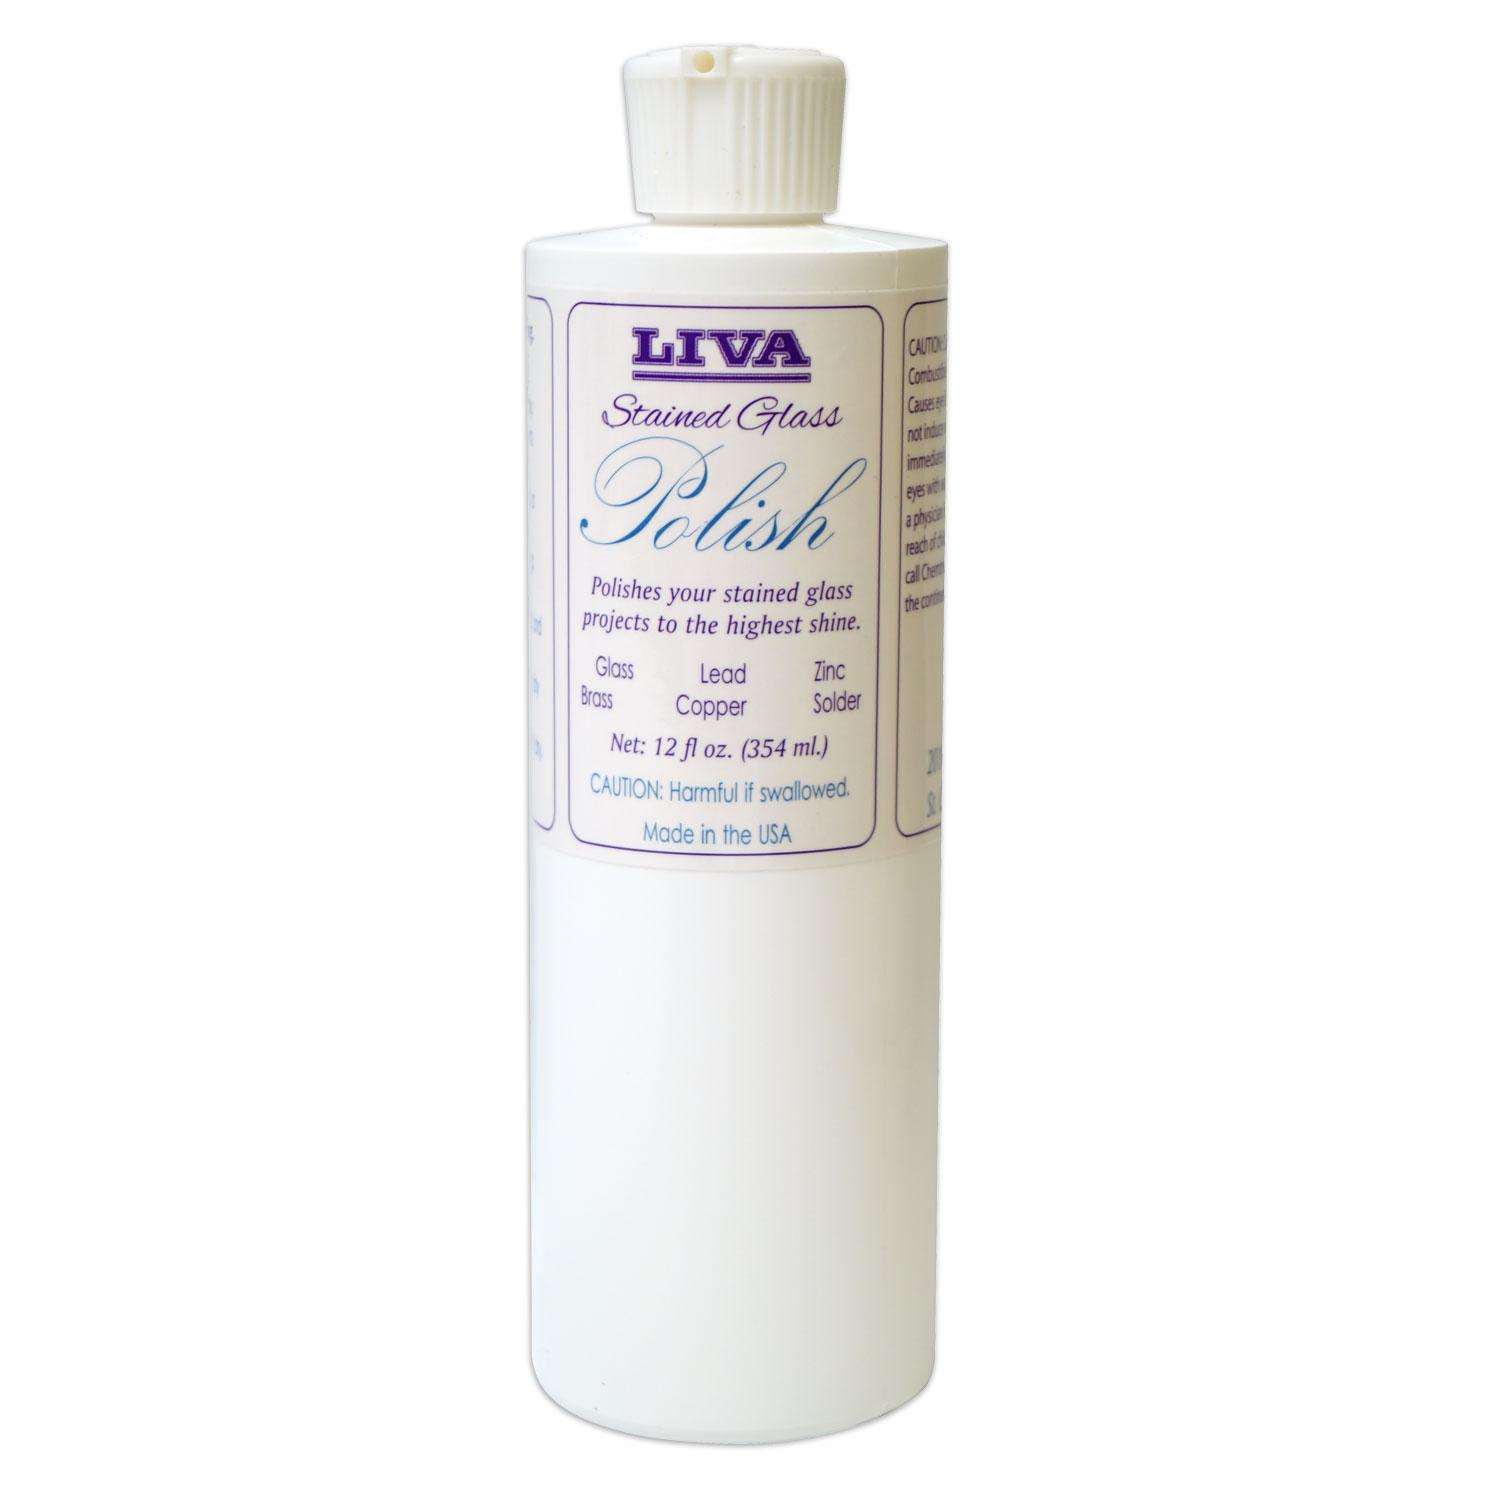 Liva Stained Glass Polish - 12 Oz